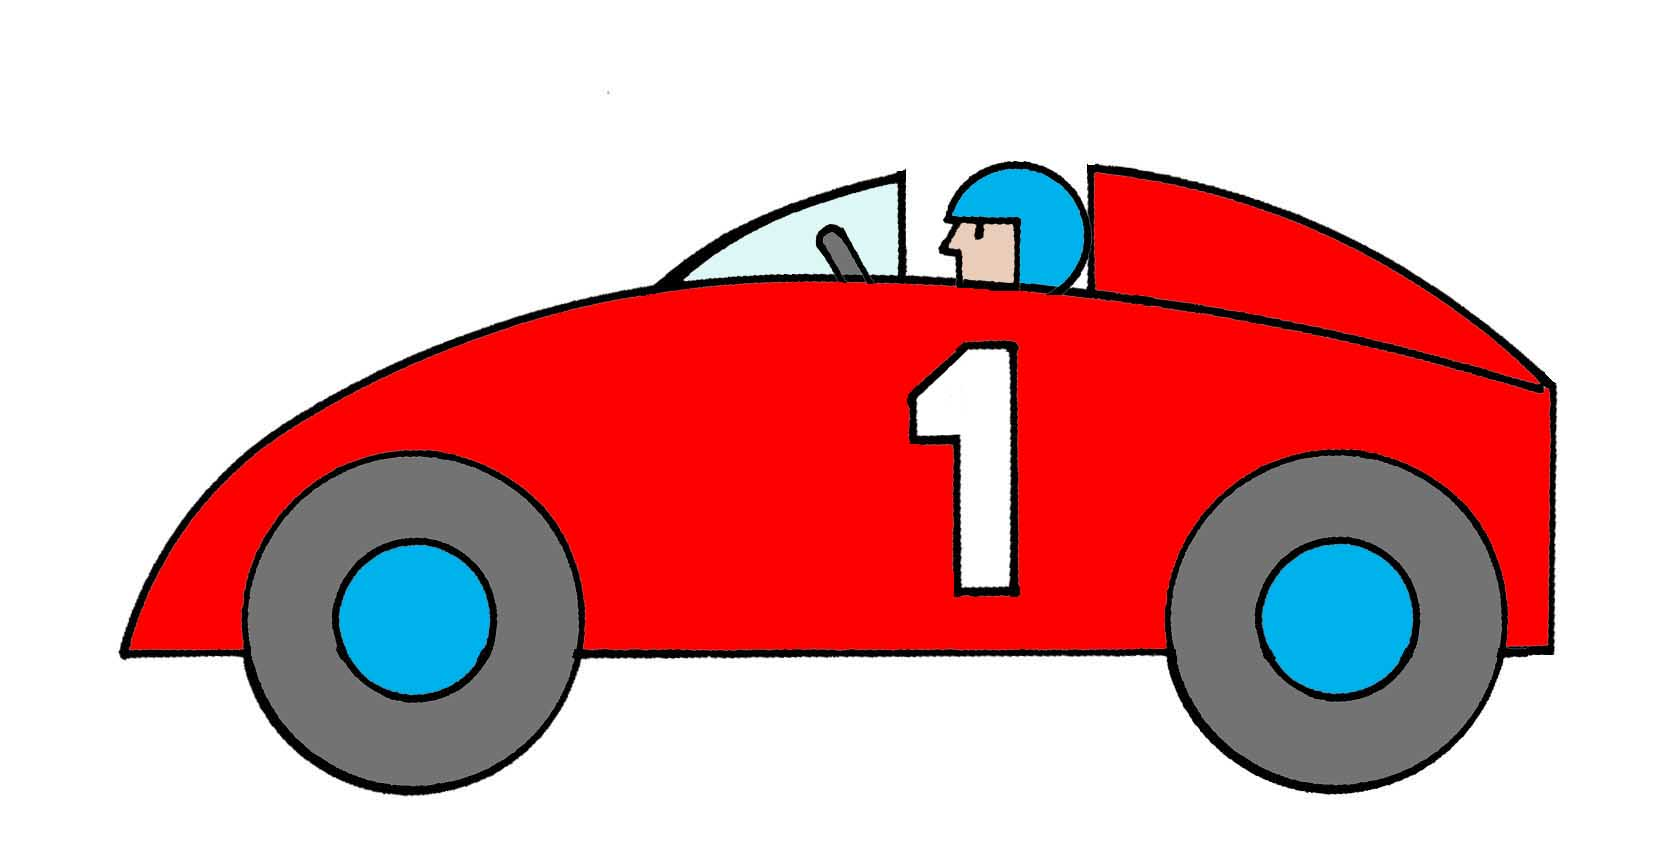 cartoon cars clipart - photo #46